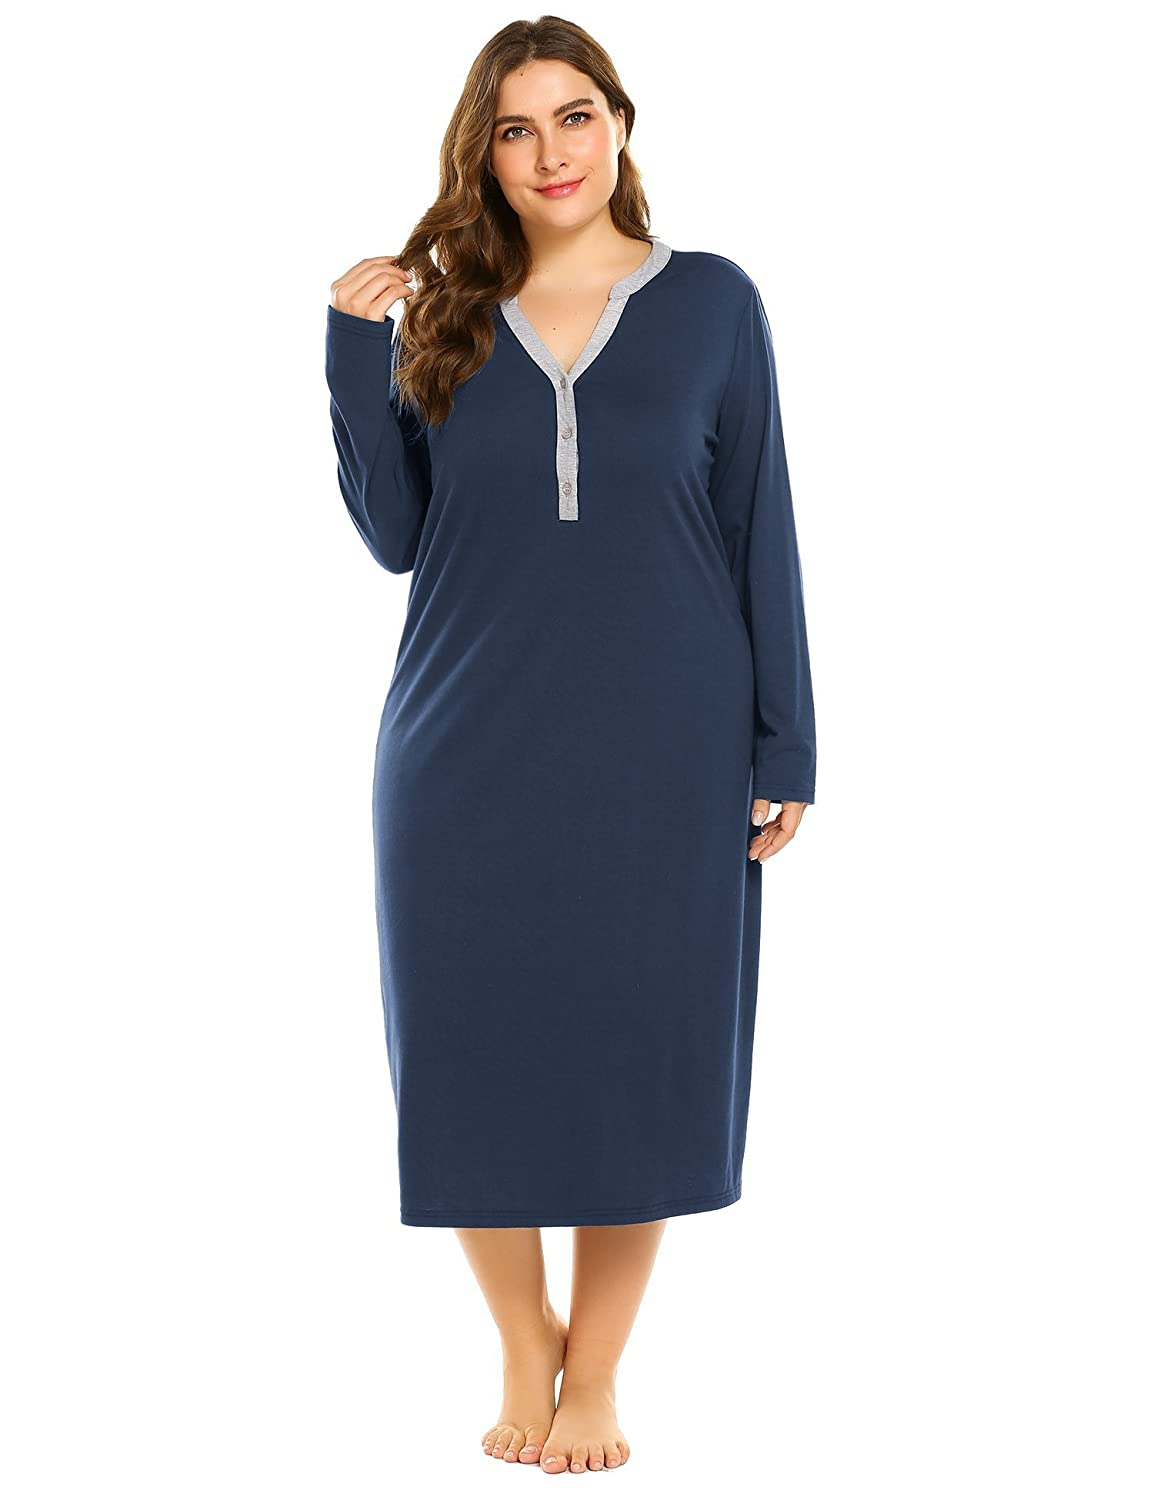 IN'VOLAND Sleepwear Women's Plus Size Cotton Knit Long Sleeve Nightgown Full Length Sleep Dress(16W~24W) INK009701